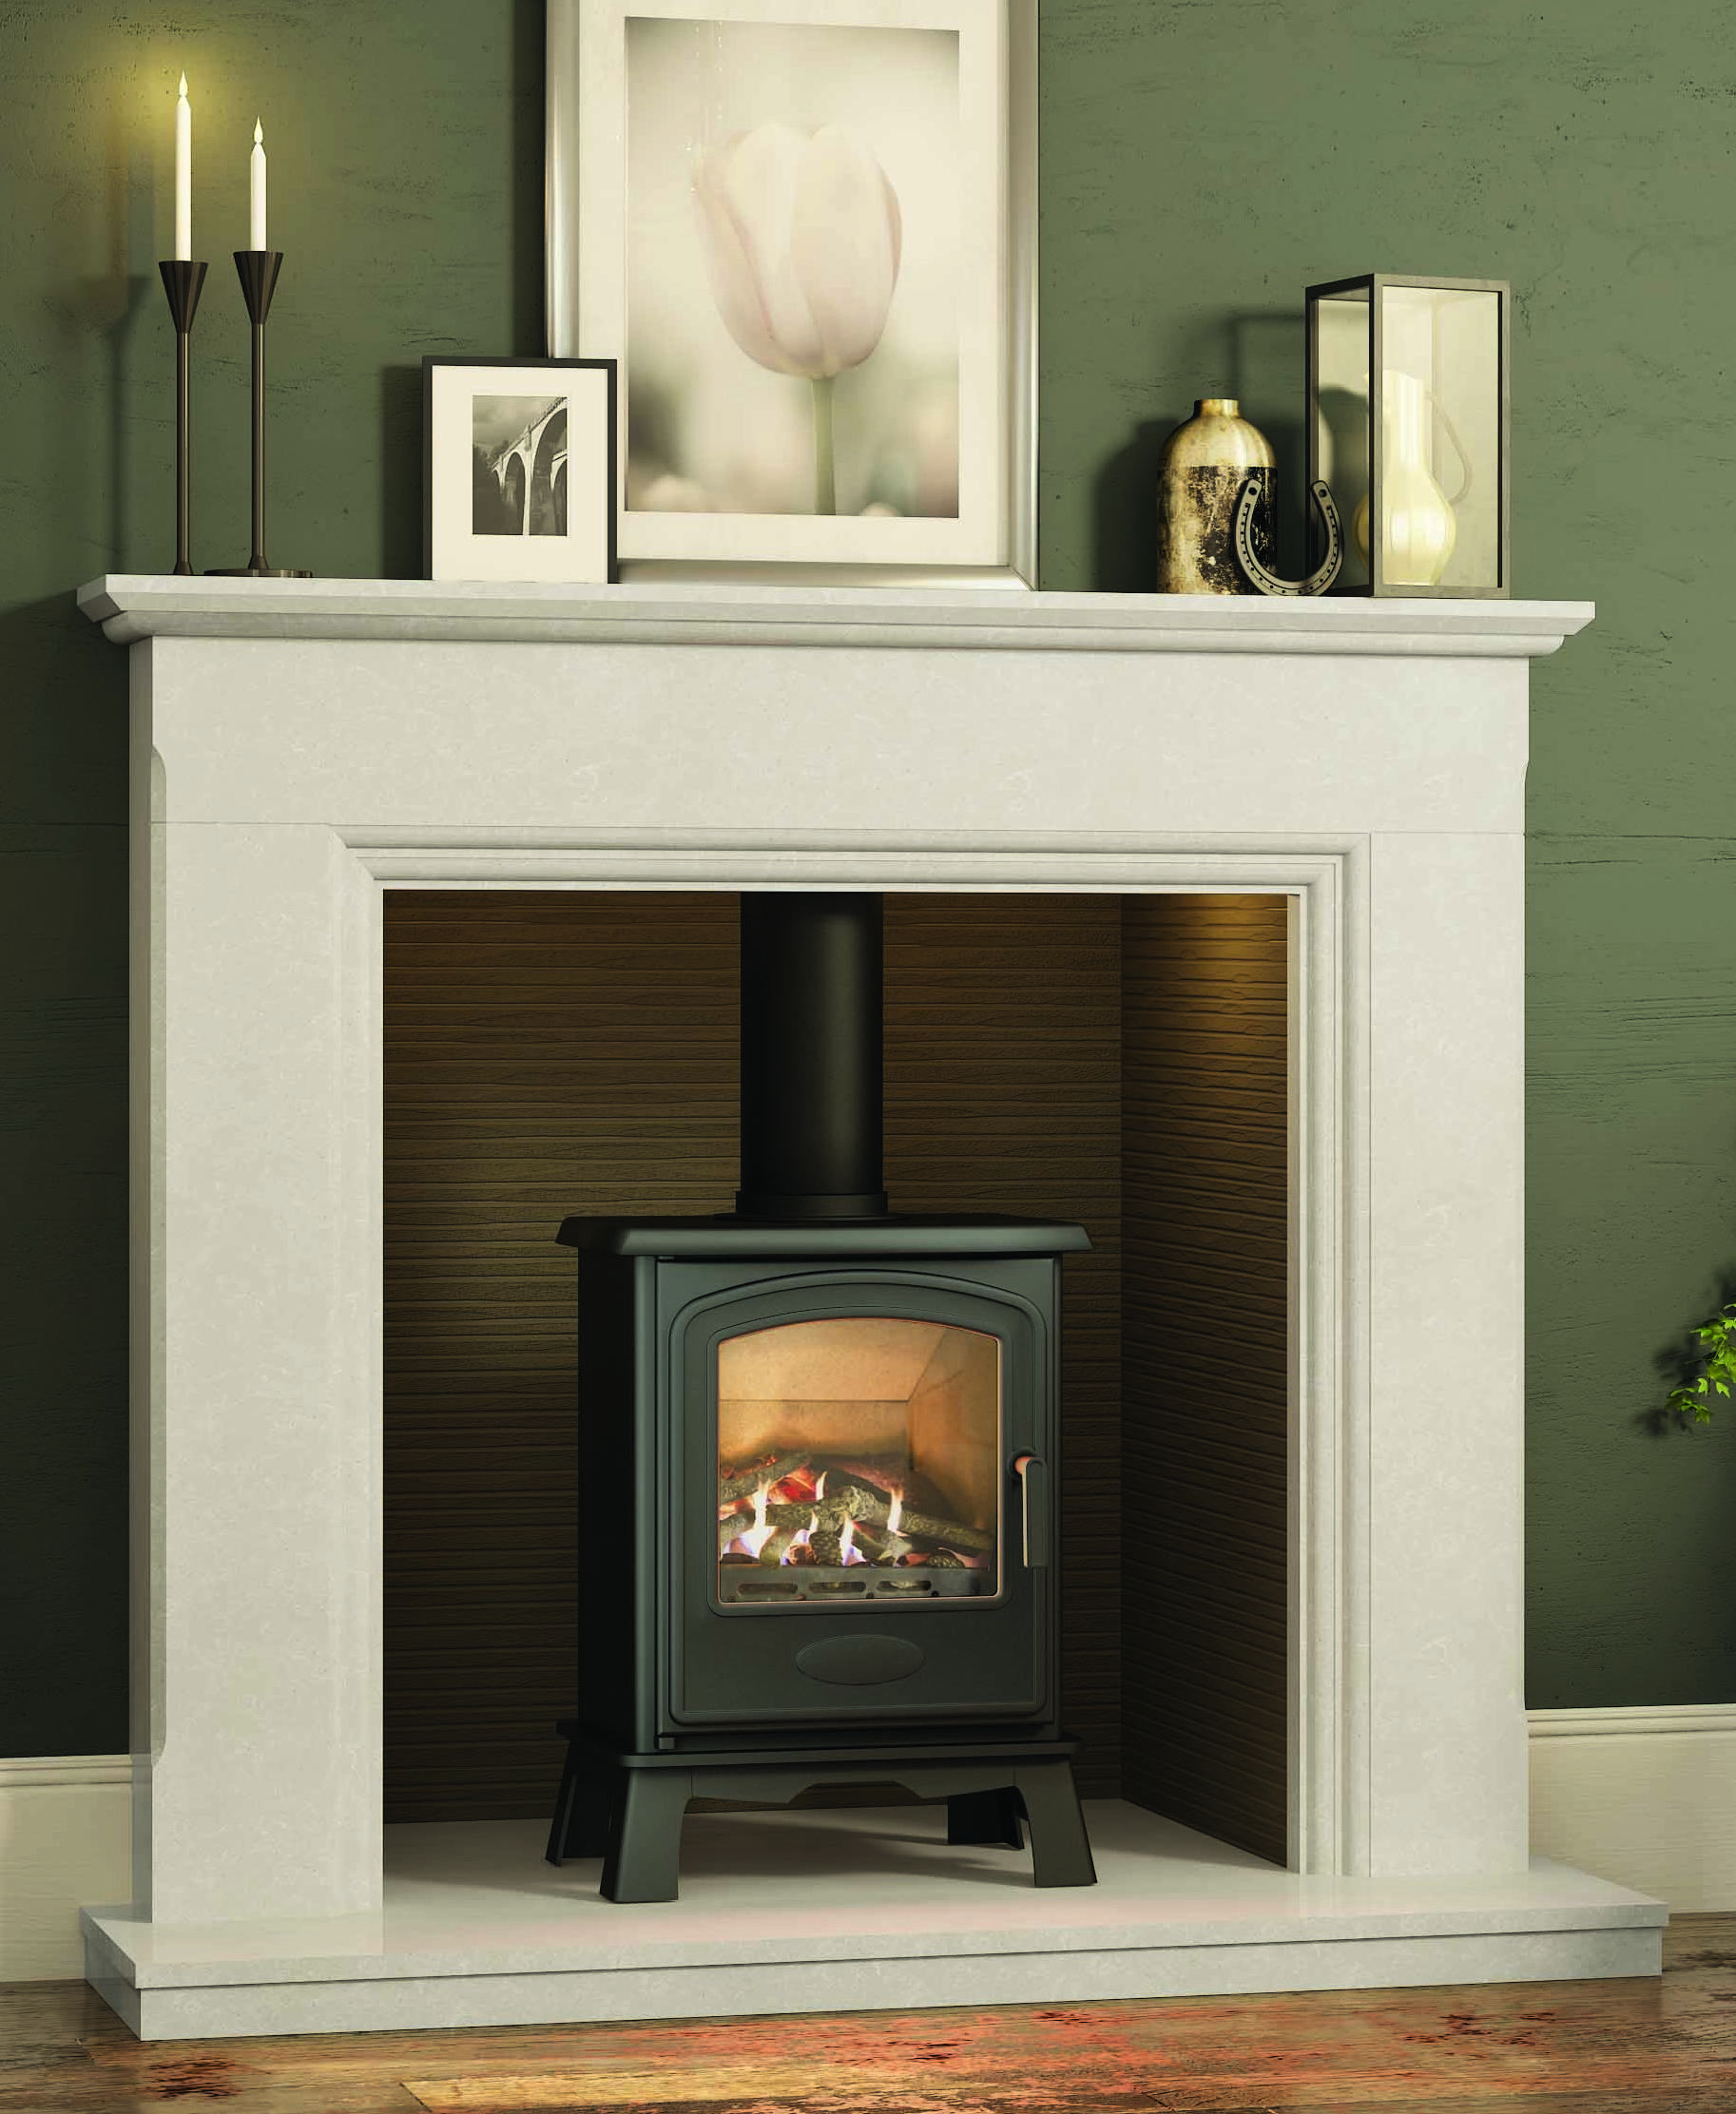 4.7KW Hereford 5 Conventional Gas Stove